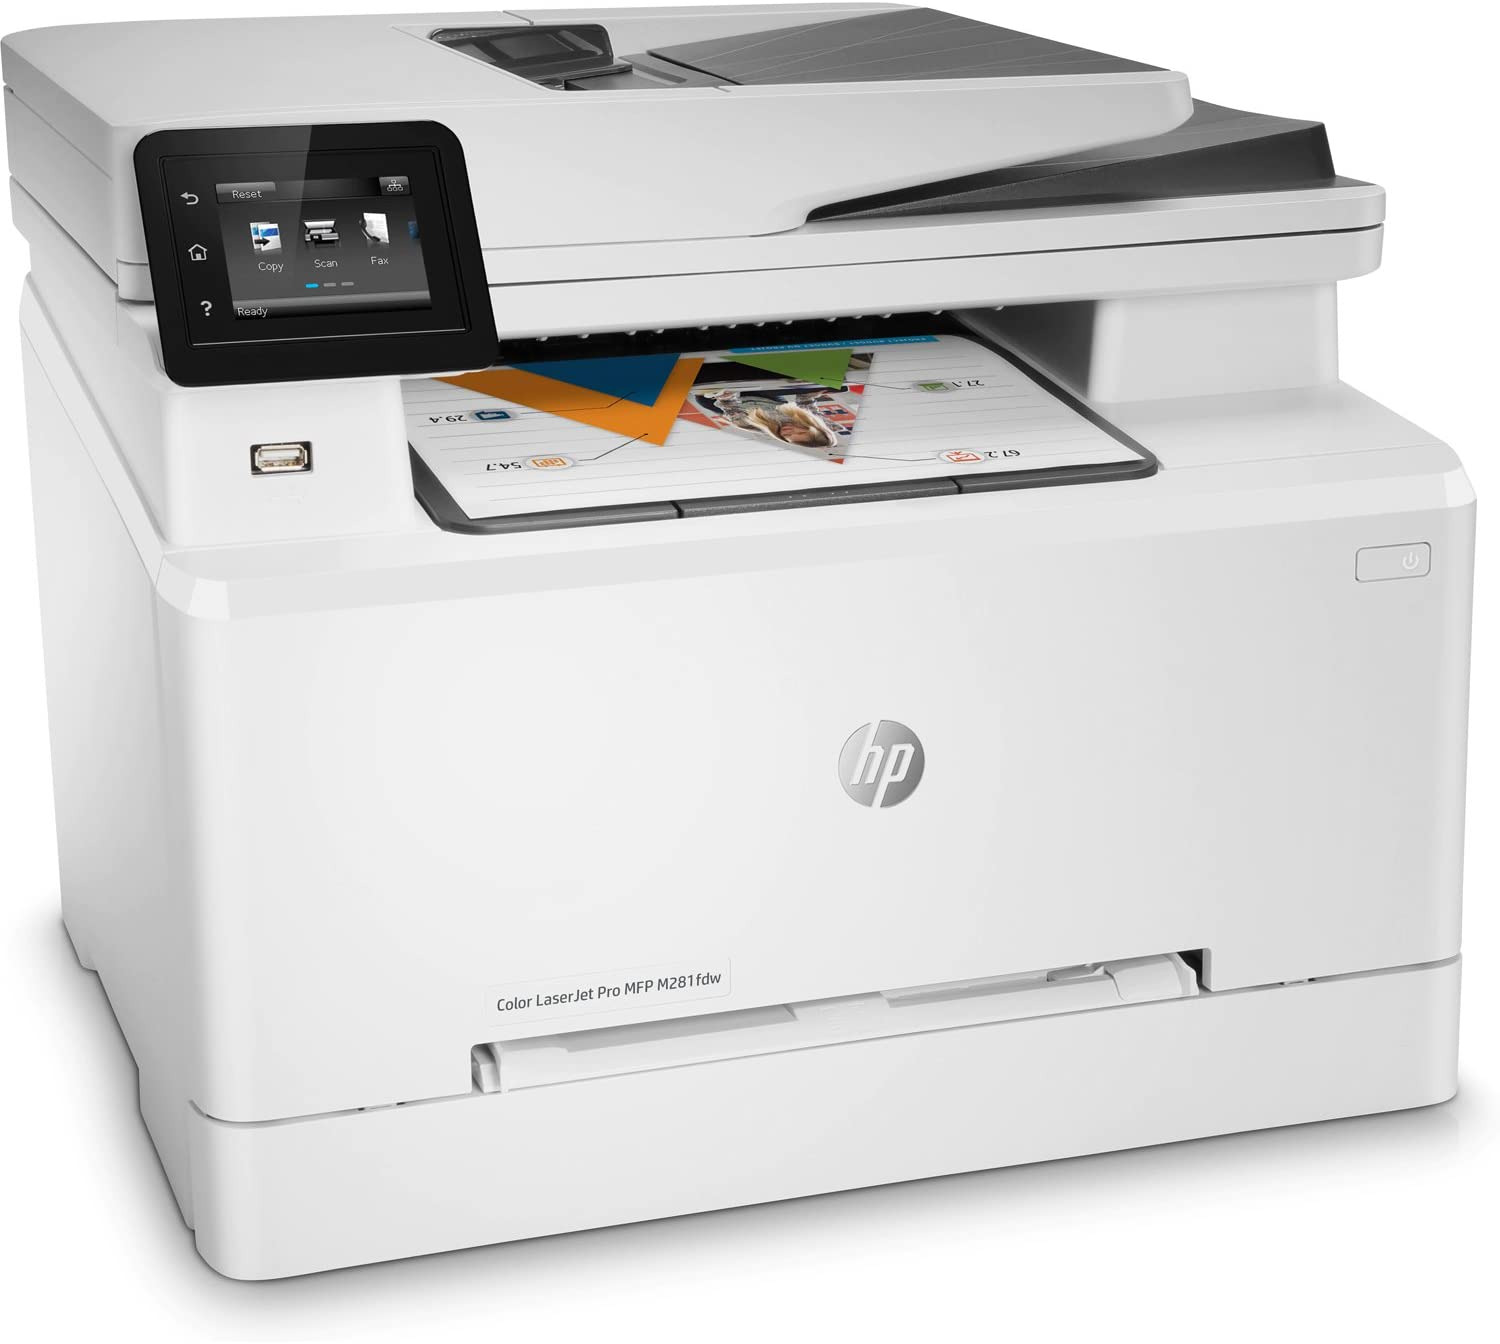 HP M281fdw LaserJet Pro All in One Wireless Color Laser Printer - White. Buy it now for 239.99